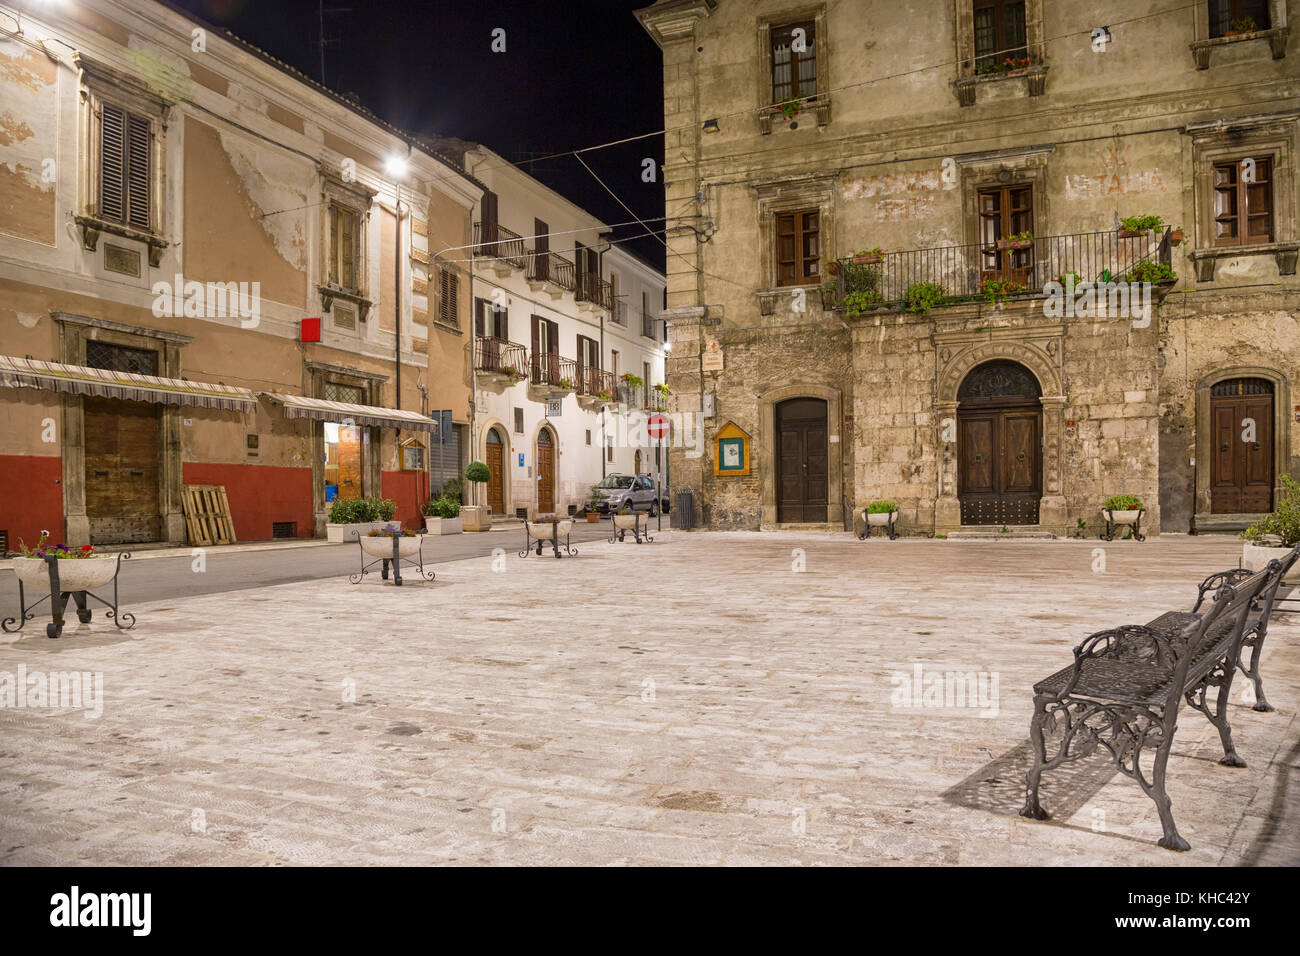 Pacentro (L'Aquila, Italy) - Night landscape of the little ancient town - Stock Image